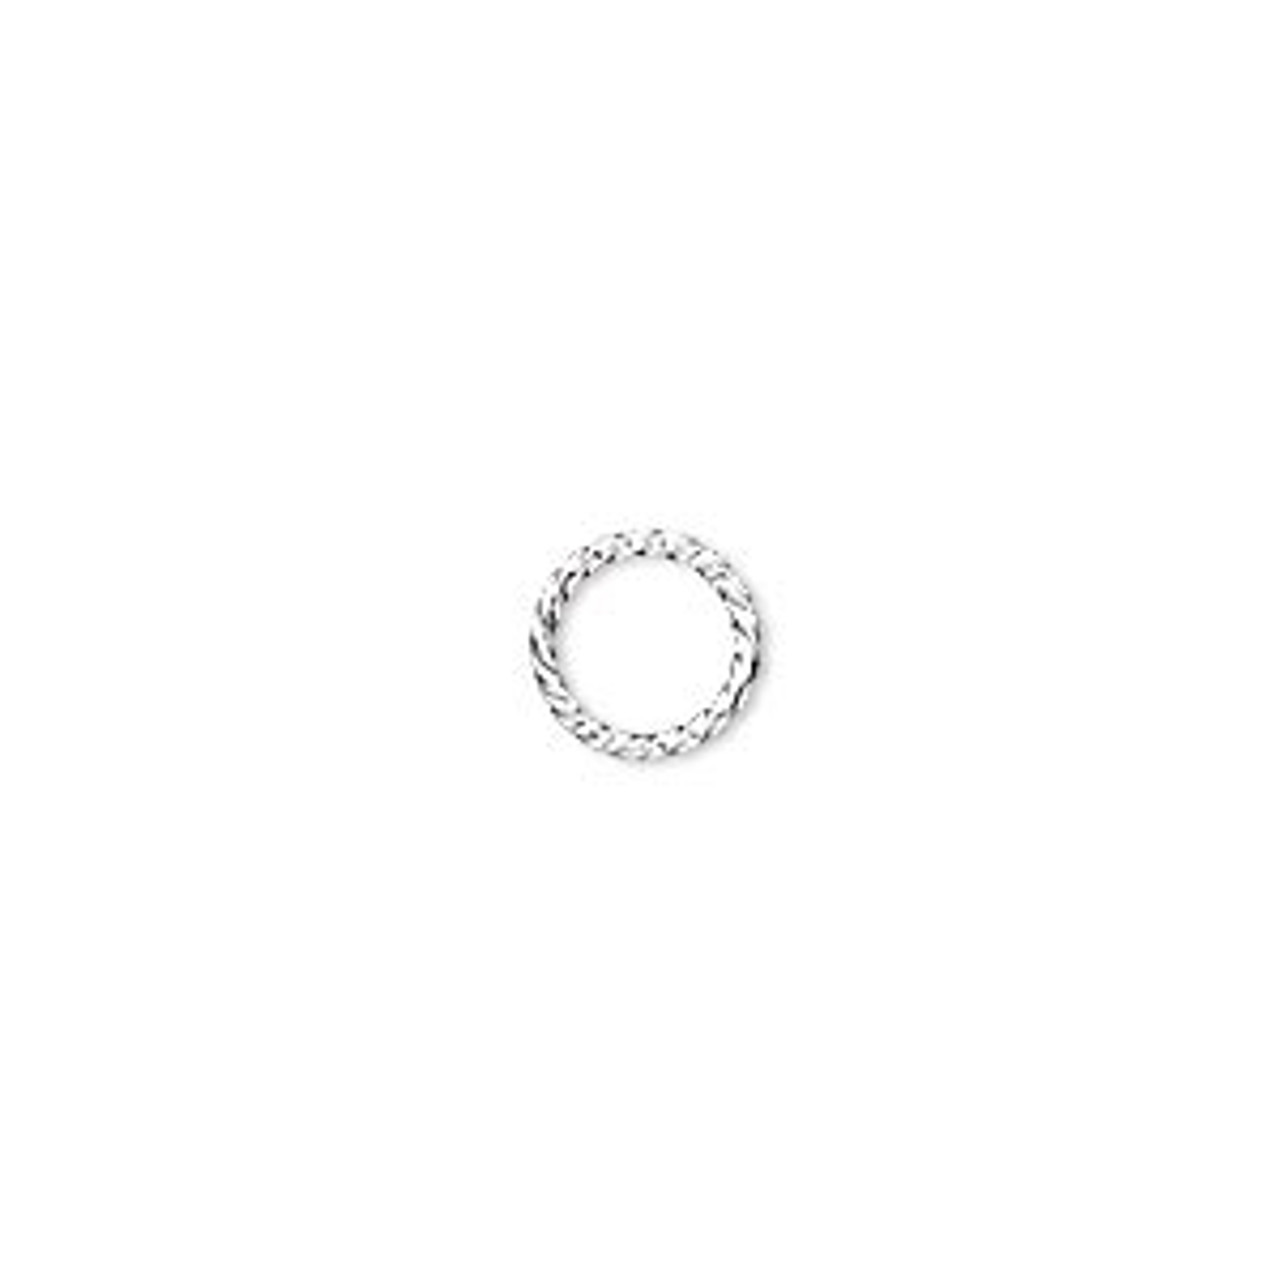 8mm Silver Plated Twisted Jump Ring (20 Ct.)